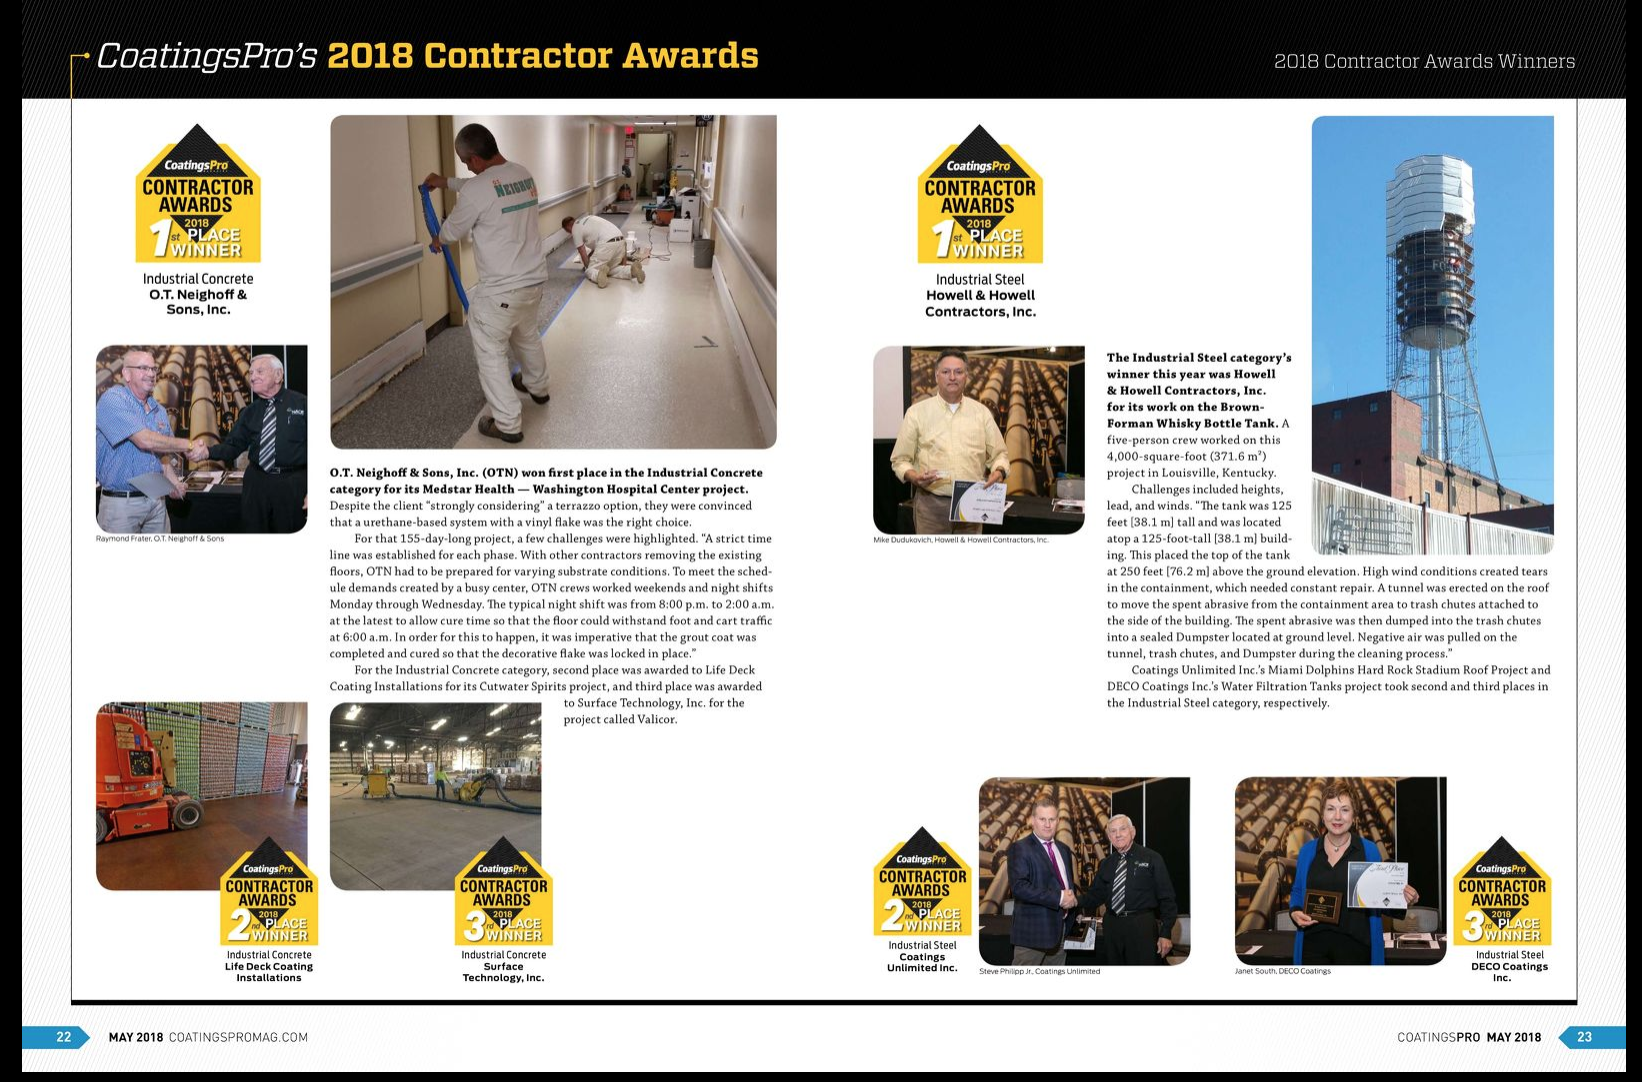 contractor awards 2018 3rd place winners